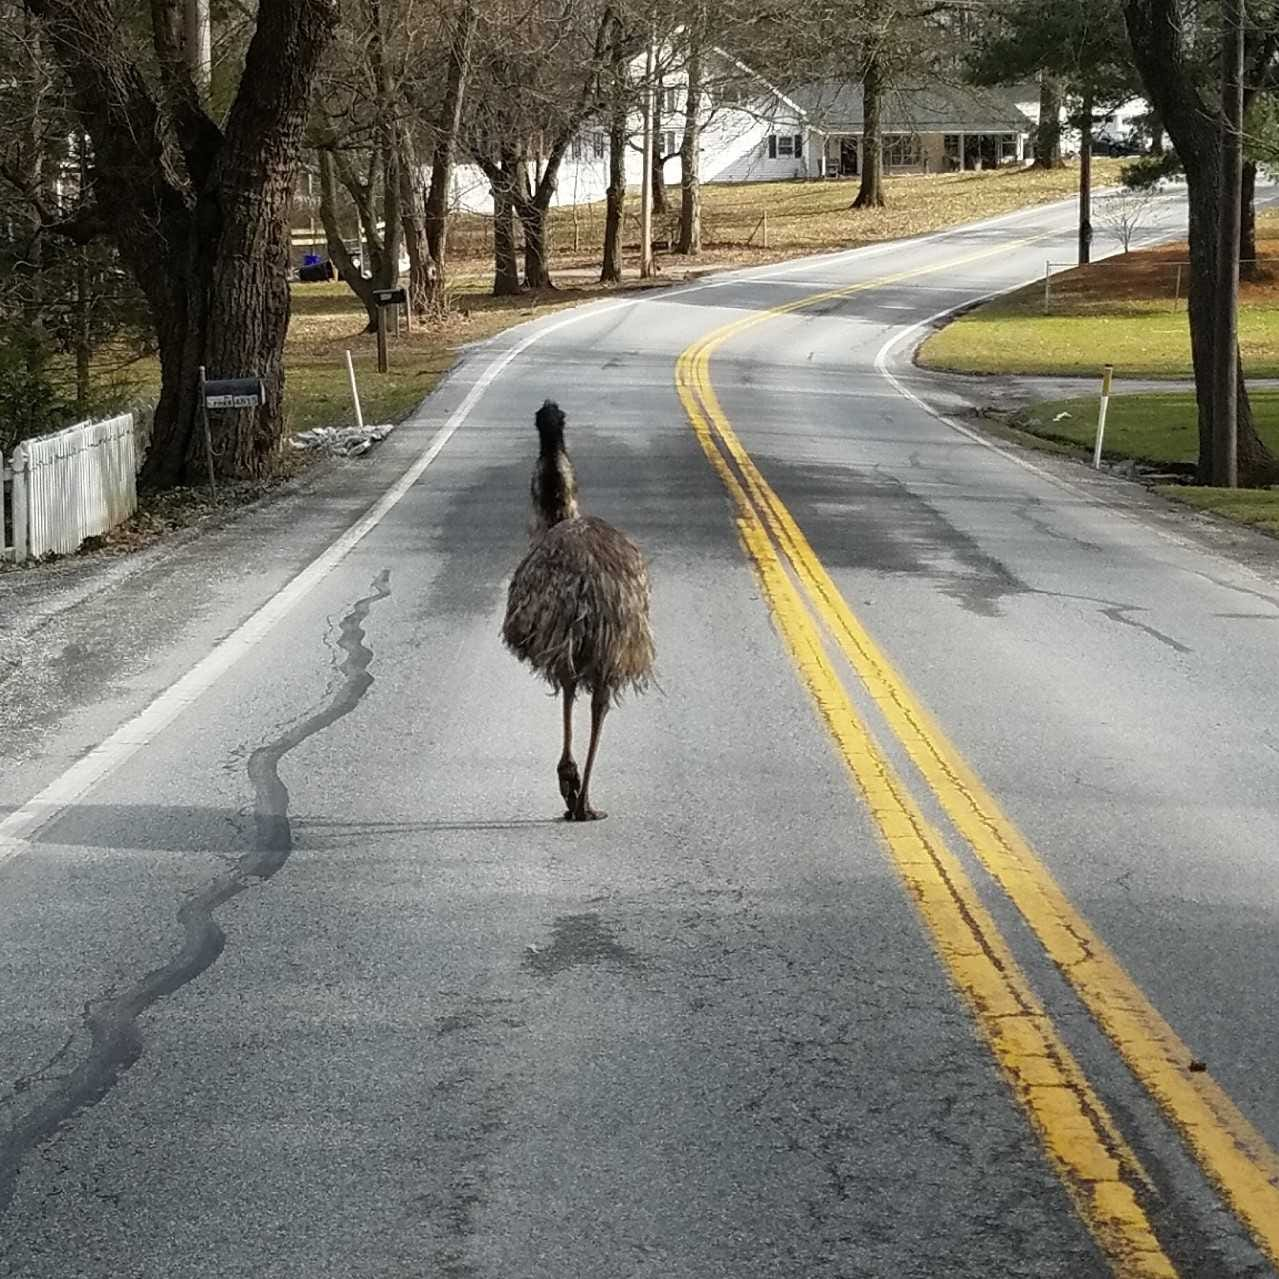 'Daggone thing was strong': A 'feisty' emu is on the loose in York County, evading capture